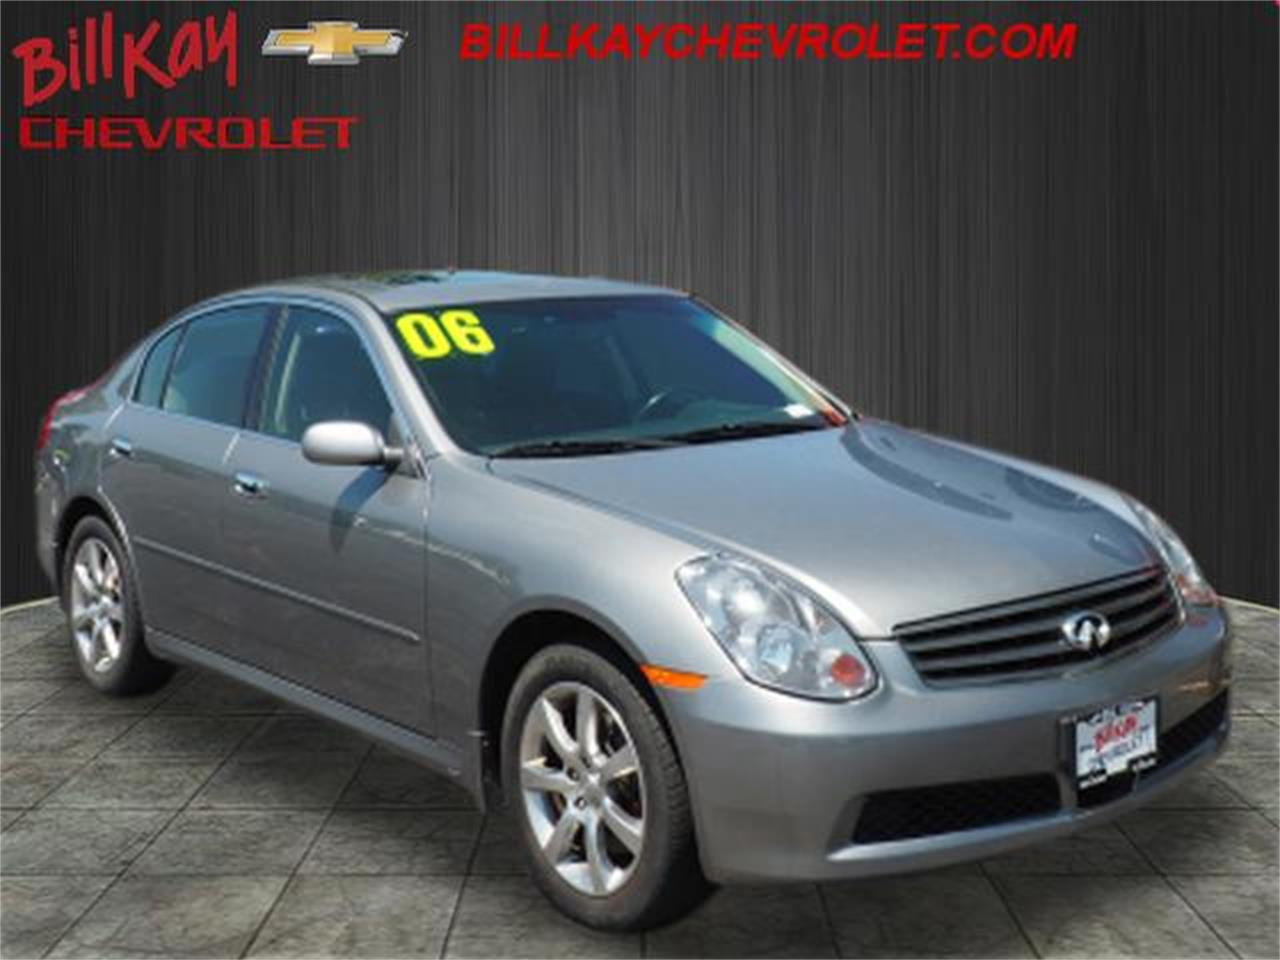 Large Picture of '06 Infiniti G35 - $5,690.00 - Q2N0